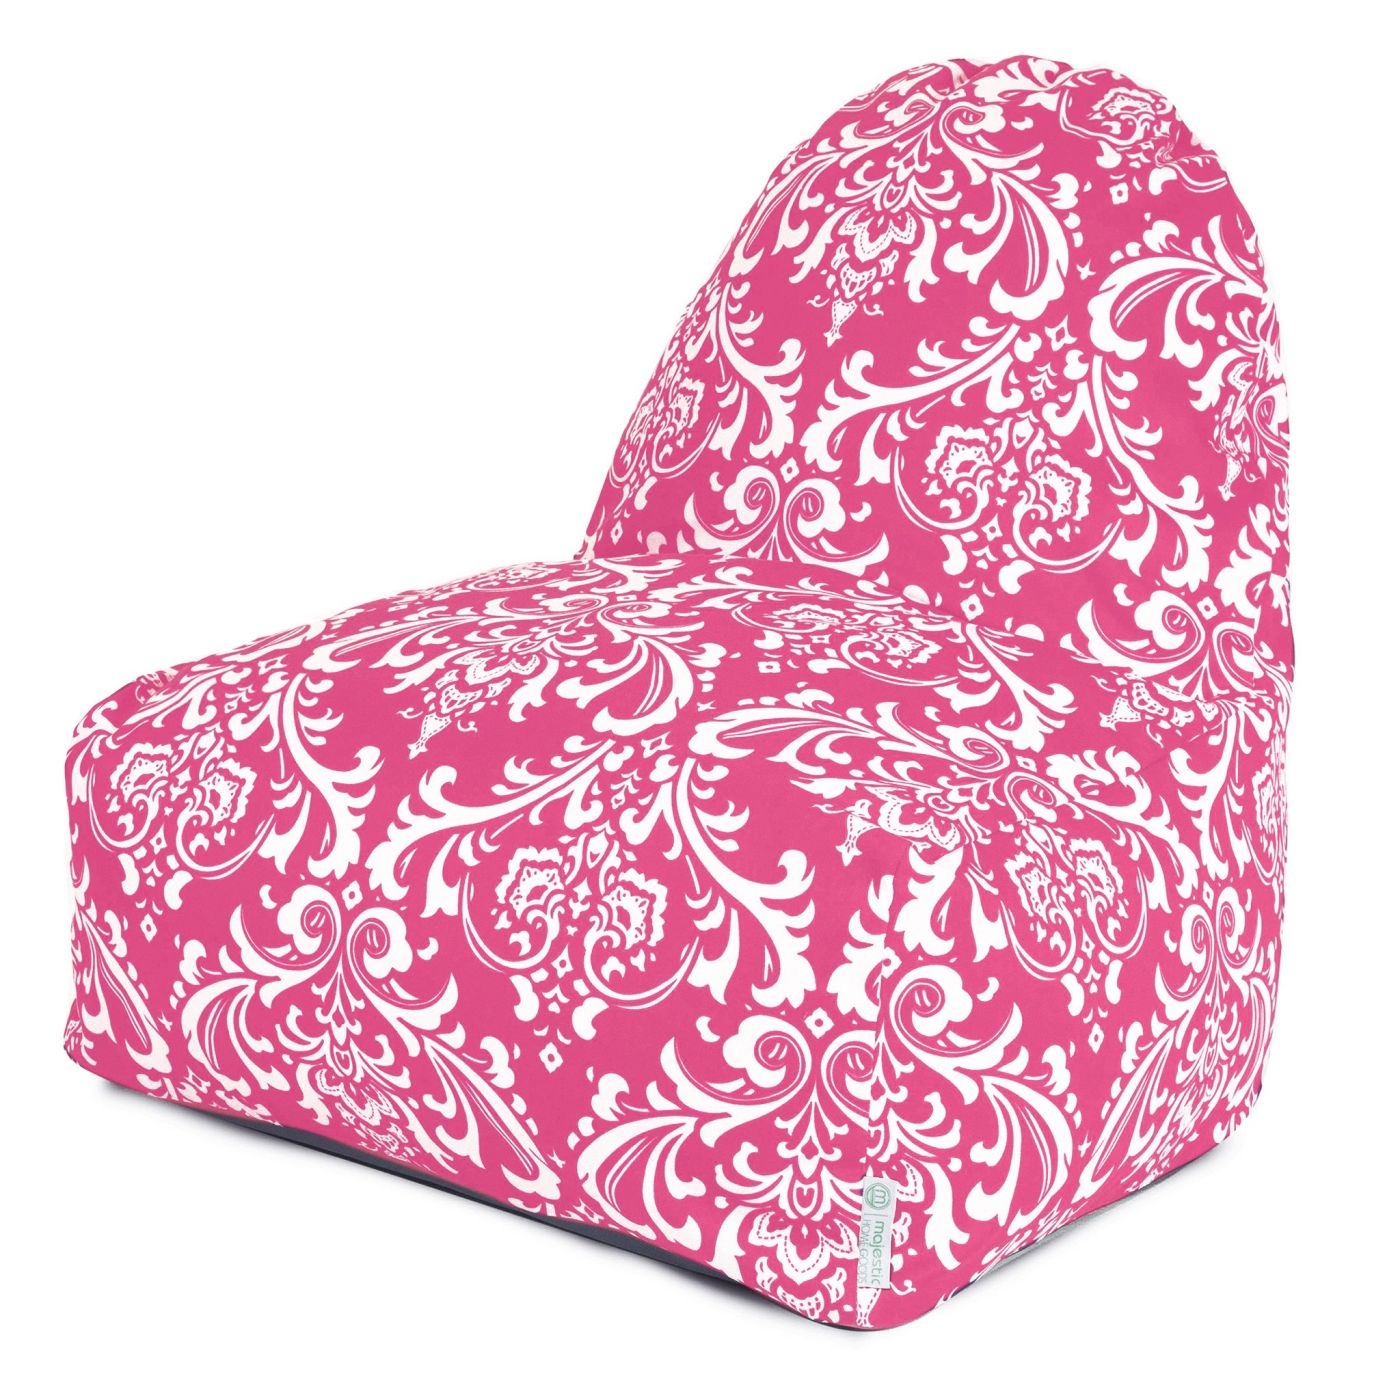 Buy Majestic Home 85907217015 Hot Pink French Quarter Kick